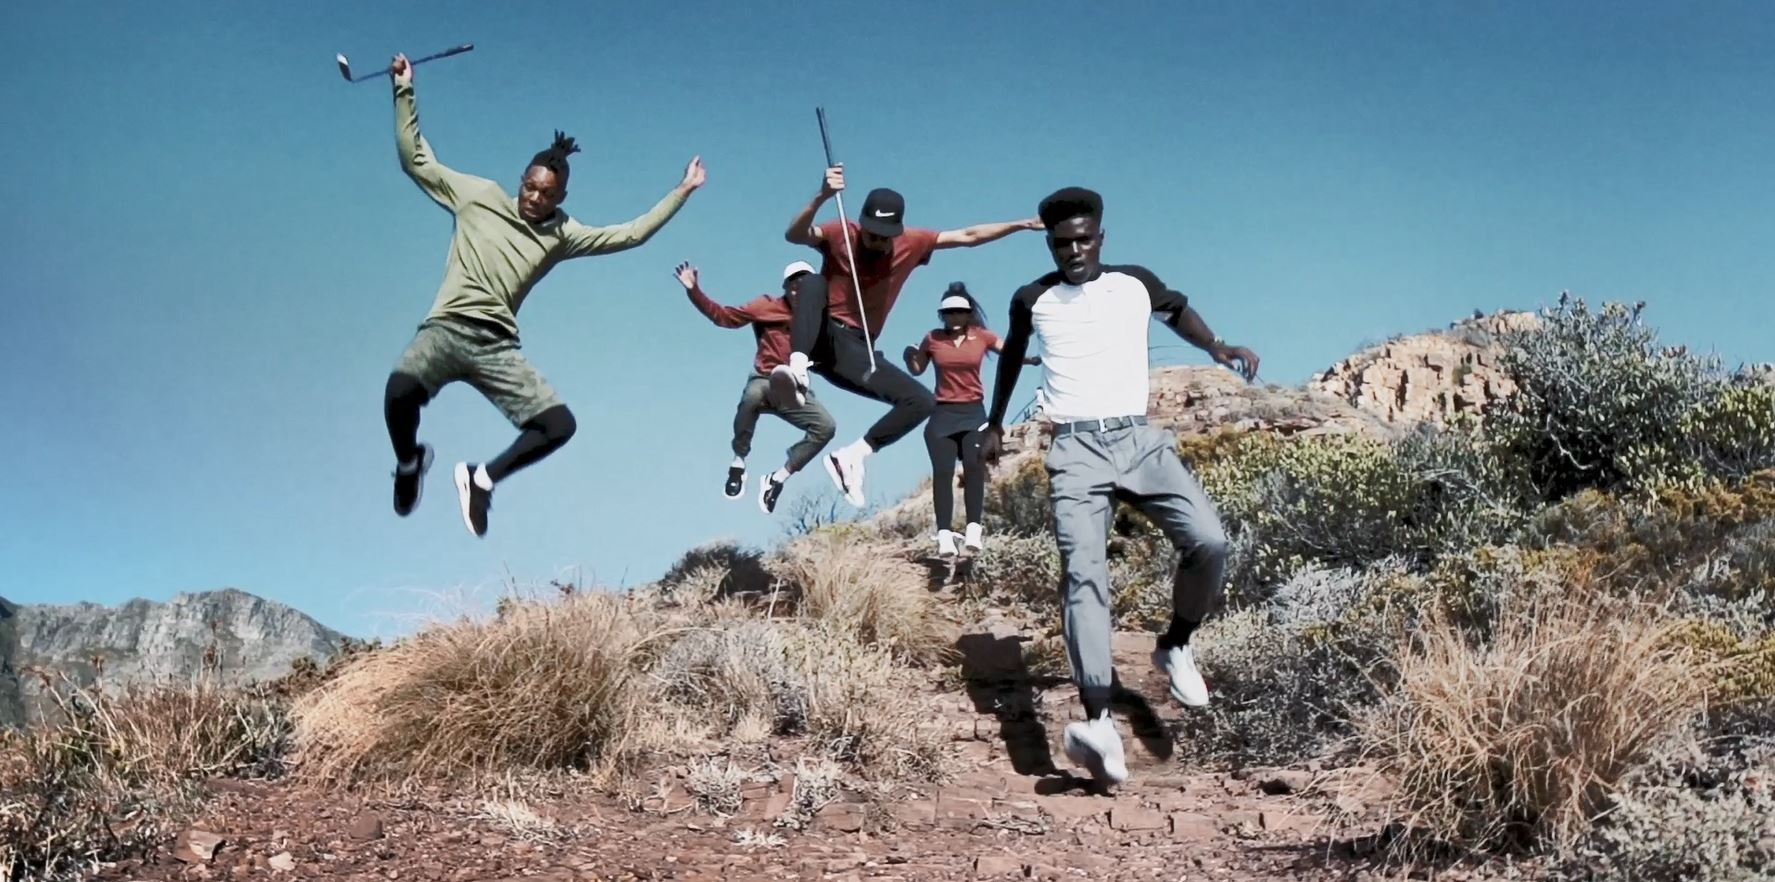 Youths Reclaim City Through Urban Golf in Stunning Nike Campaign